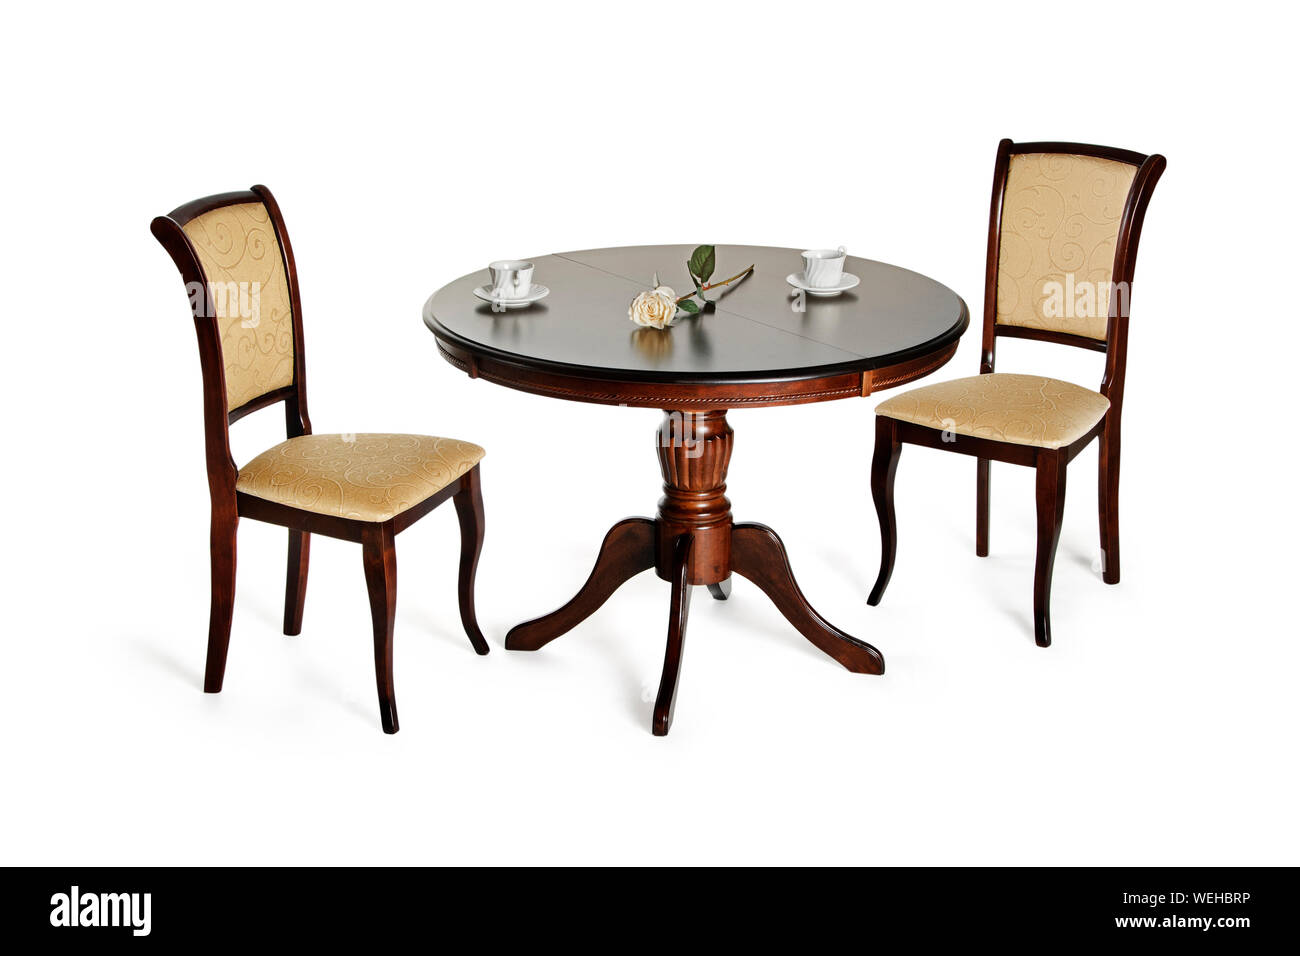 https www alamy com two chairs and round table isolated on white with shadows image267143178 html